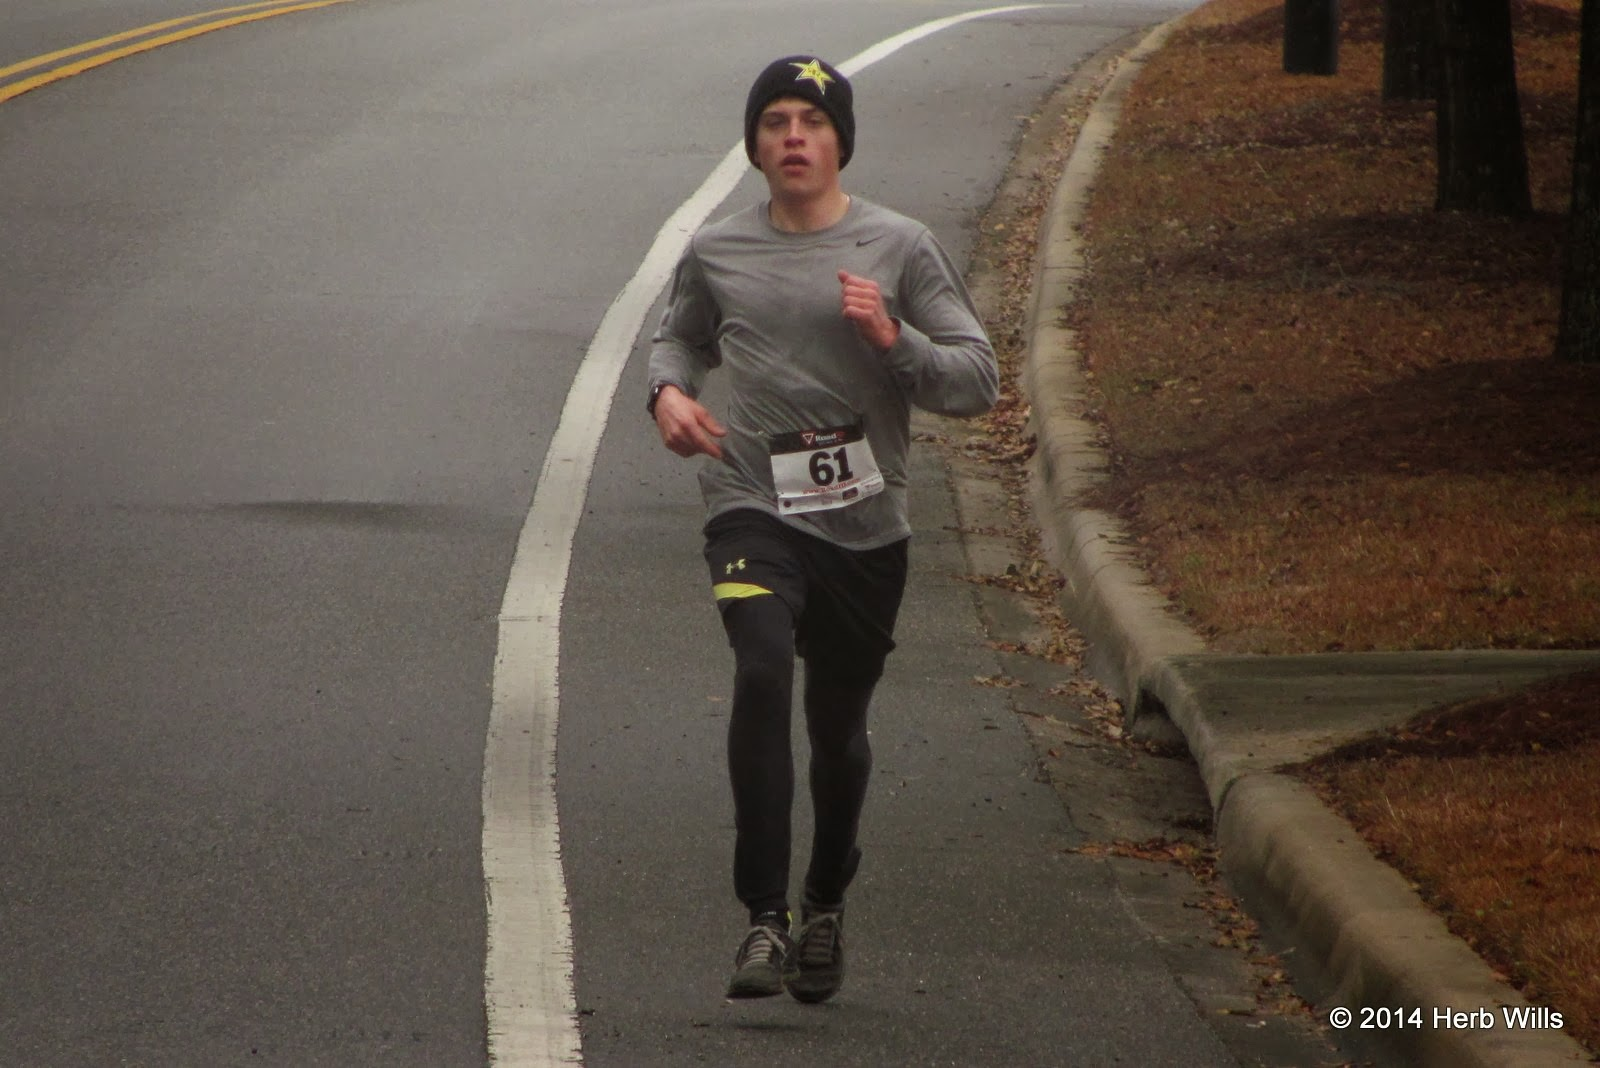 Bundled up for much colder conditions, Justin Martin (1st, 16:55) leads the 2014 2-1-1 Big Bend 5K on Schoolhouse Road, about two kilometers into the race